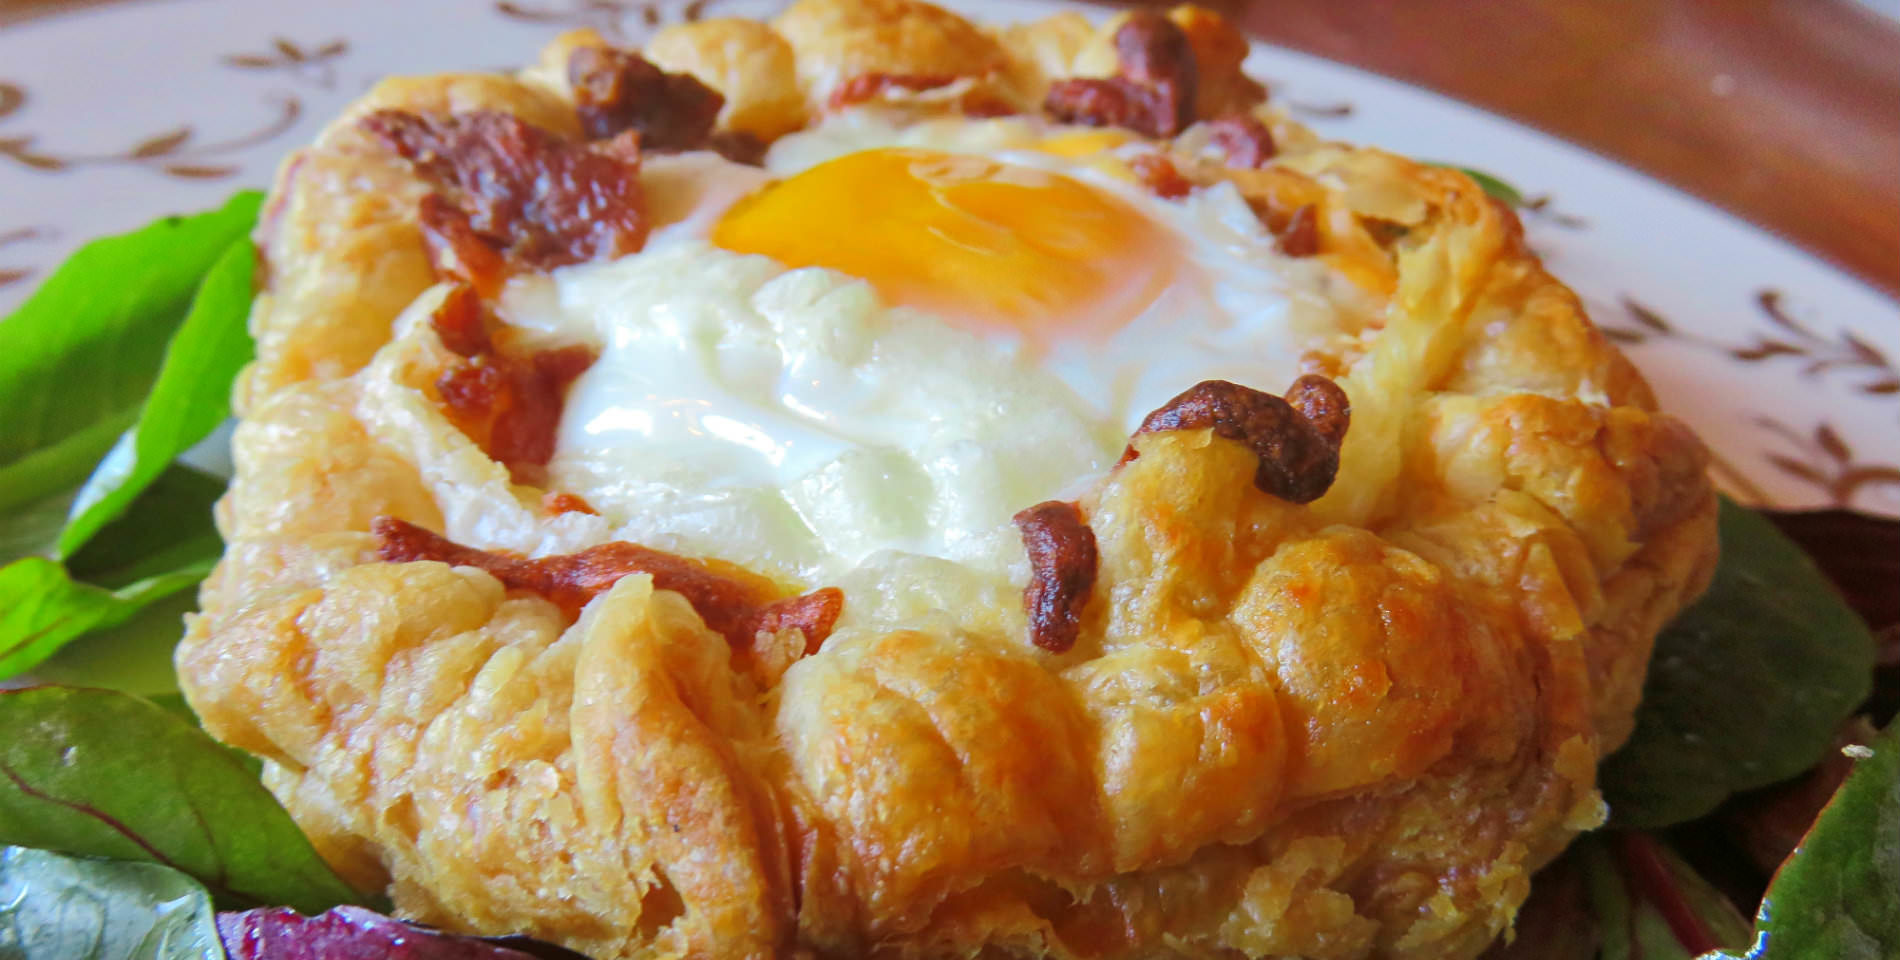 A sunny-side up egg rests in a golden brown flake pastry in a bed of greens.